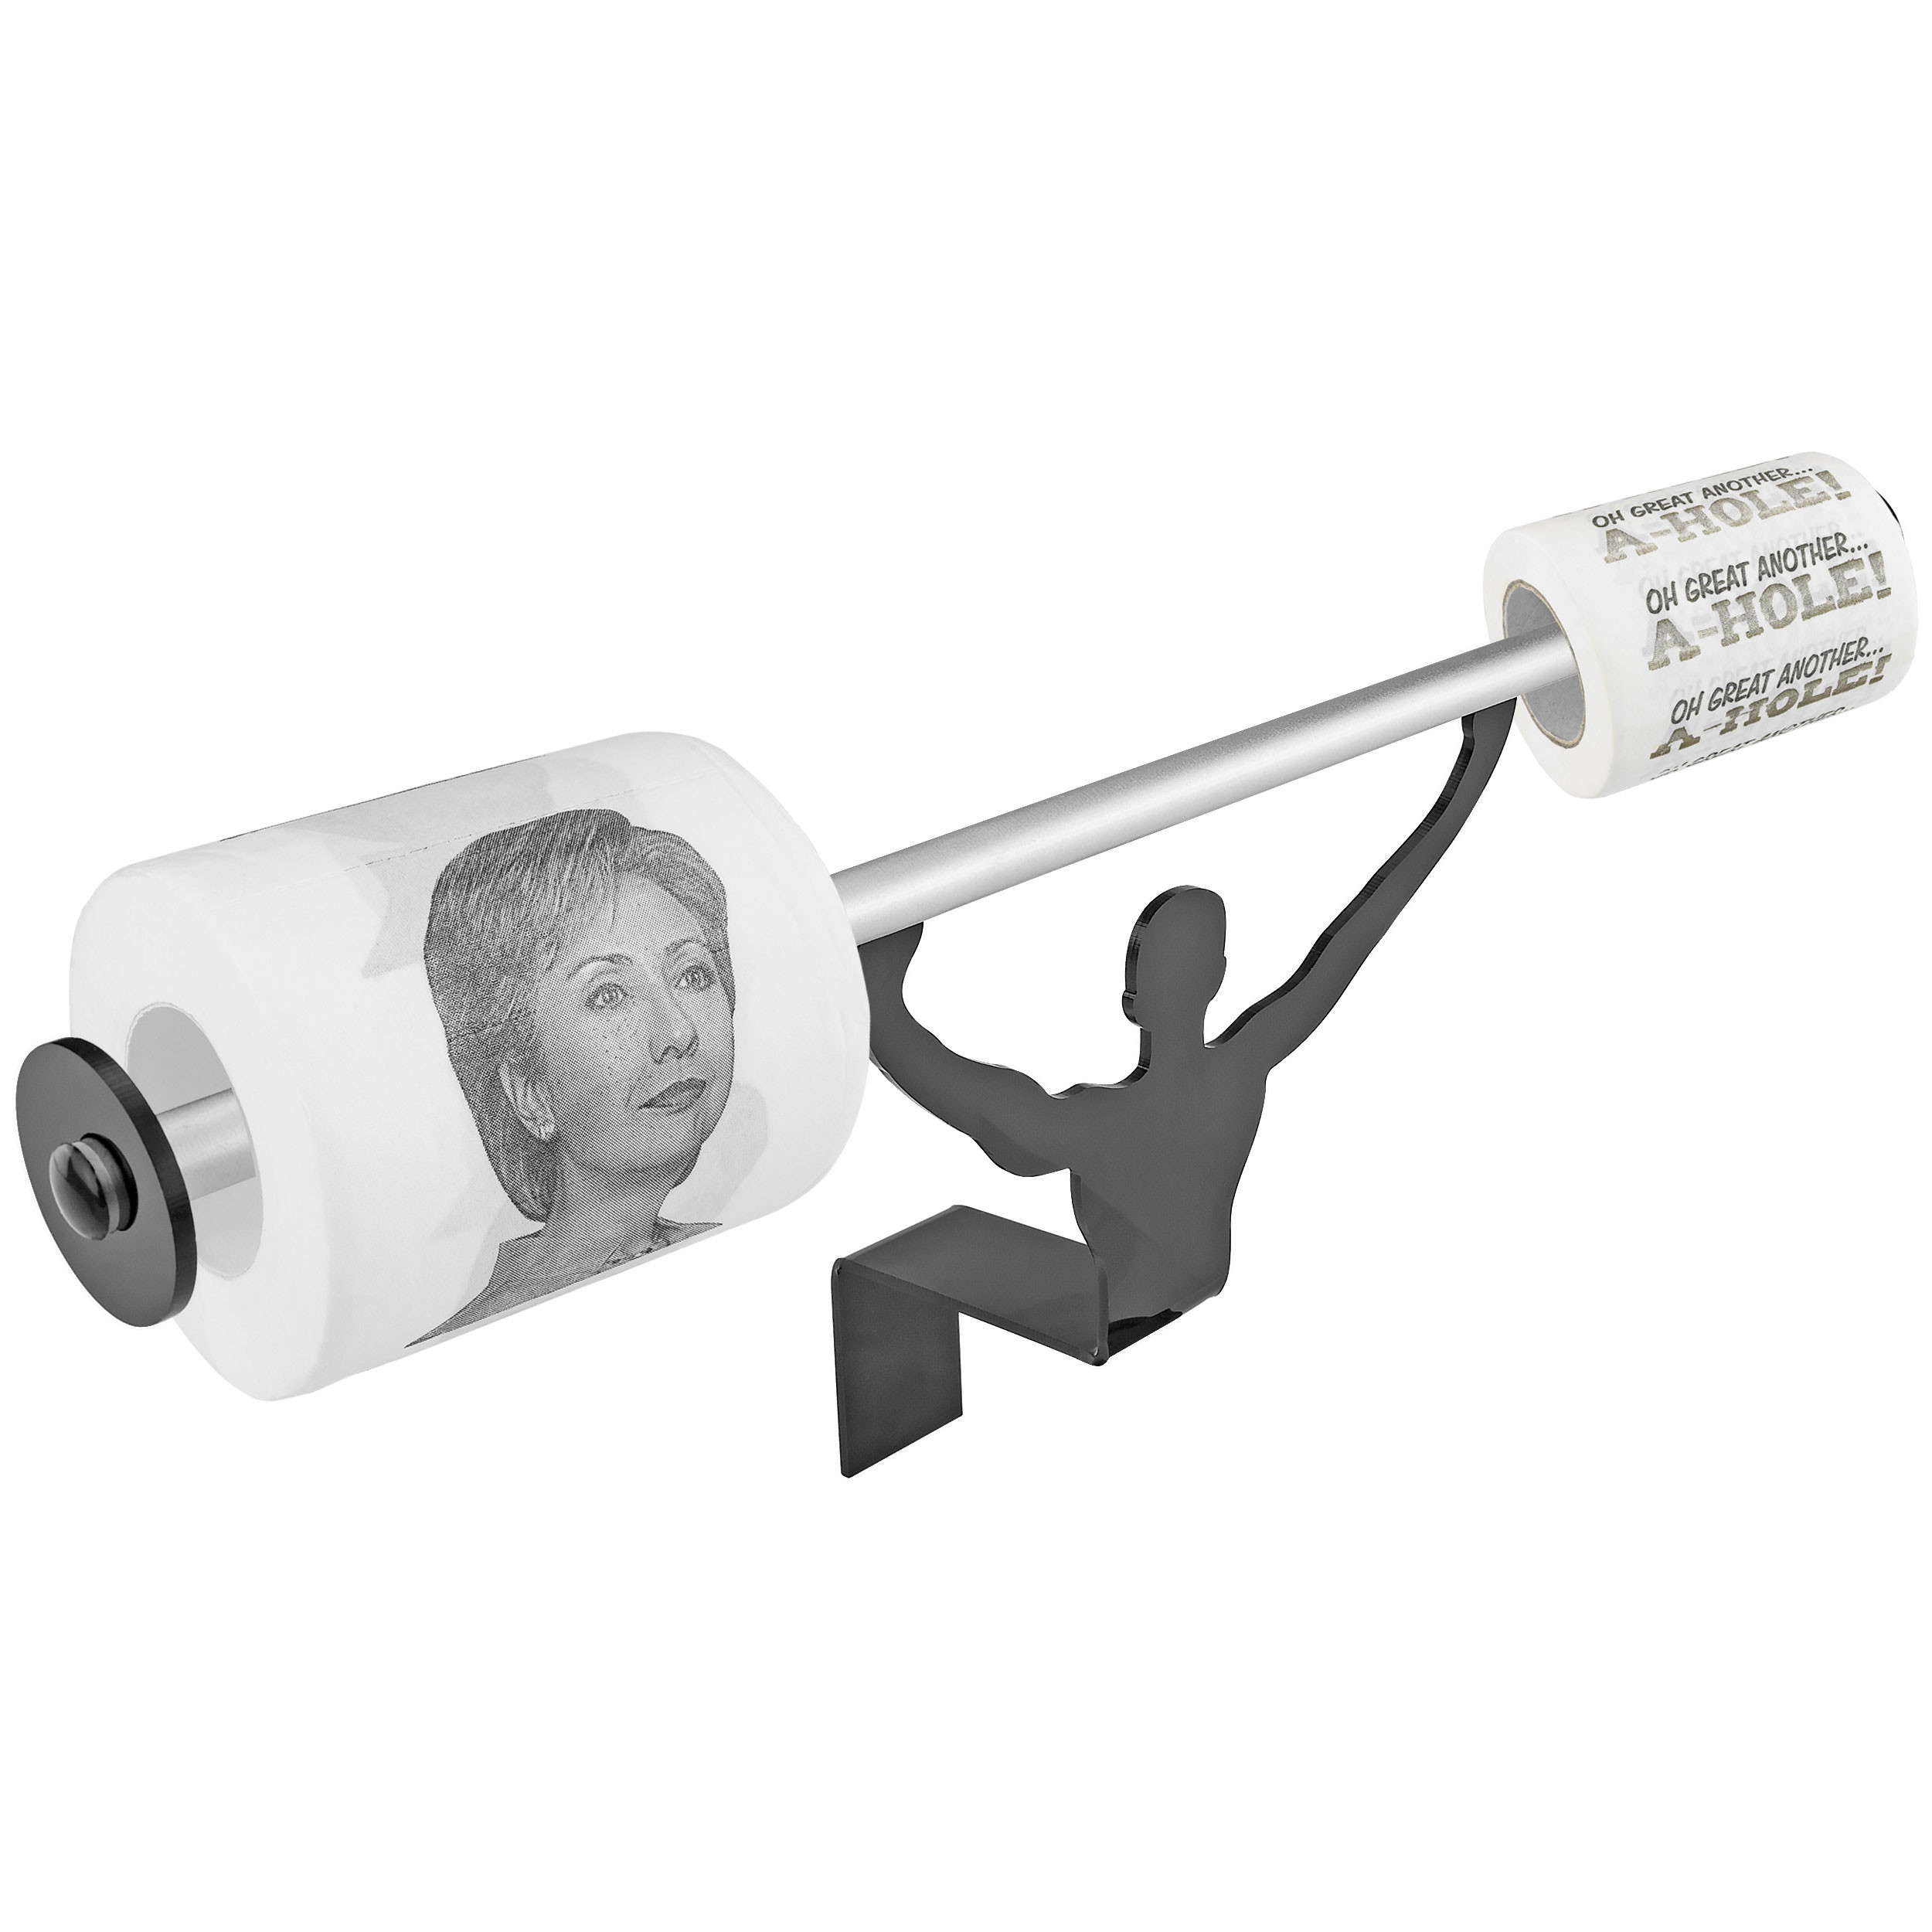 Fairly Odd Novelties Hillary Clinton & Another A-Hole Novelty Toilet Paper w/Strong Man Holder Funny Liberal Gift Set